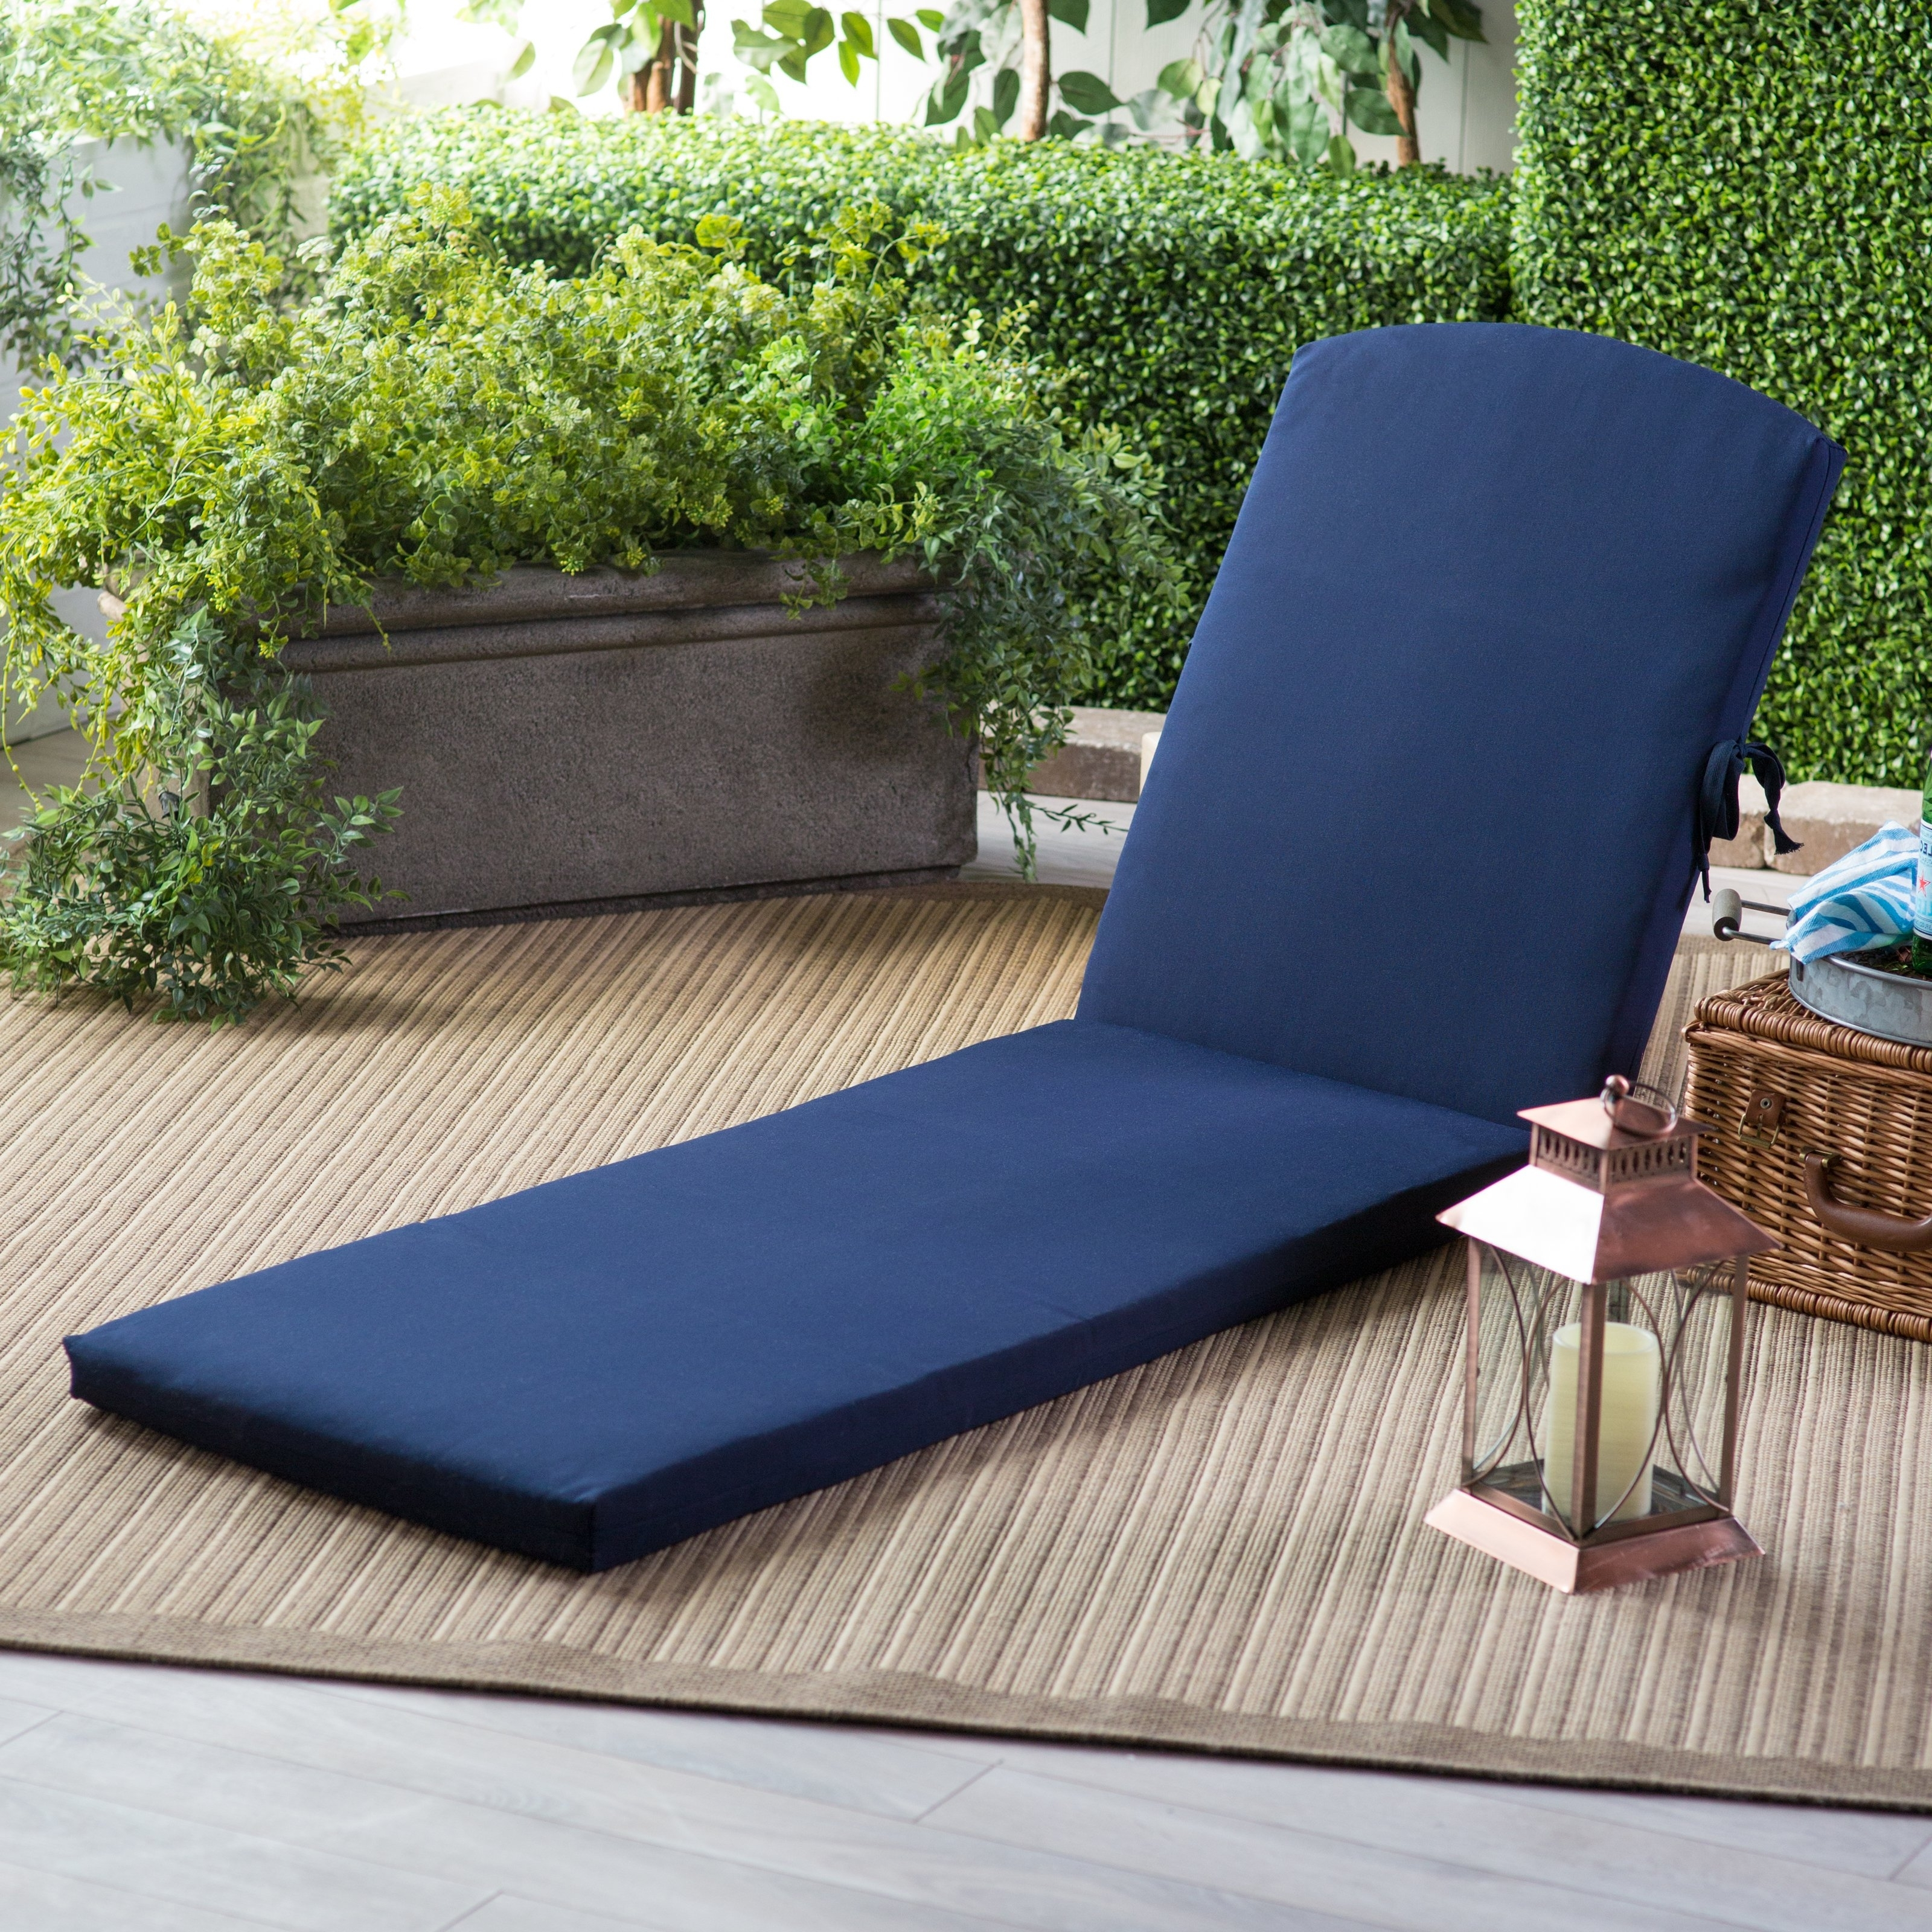 Hayneedle For Sunbrella Chaise Lounges (View 7 of 15)